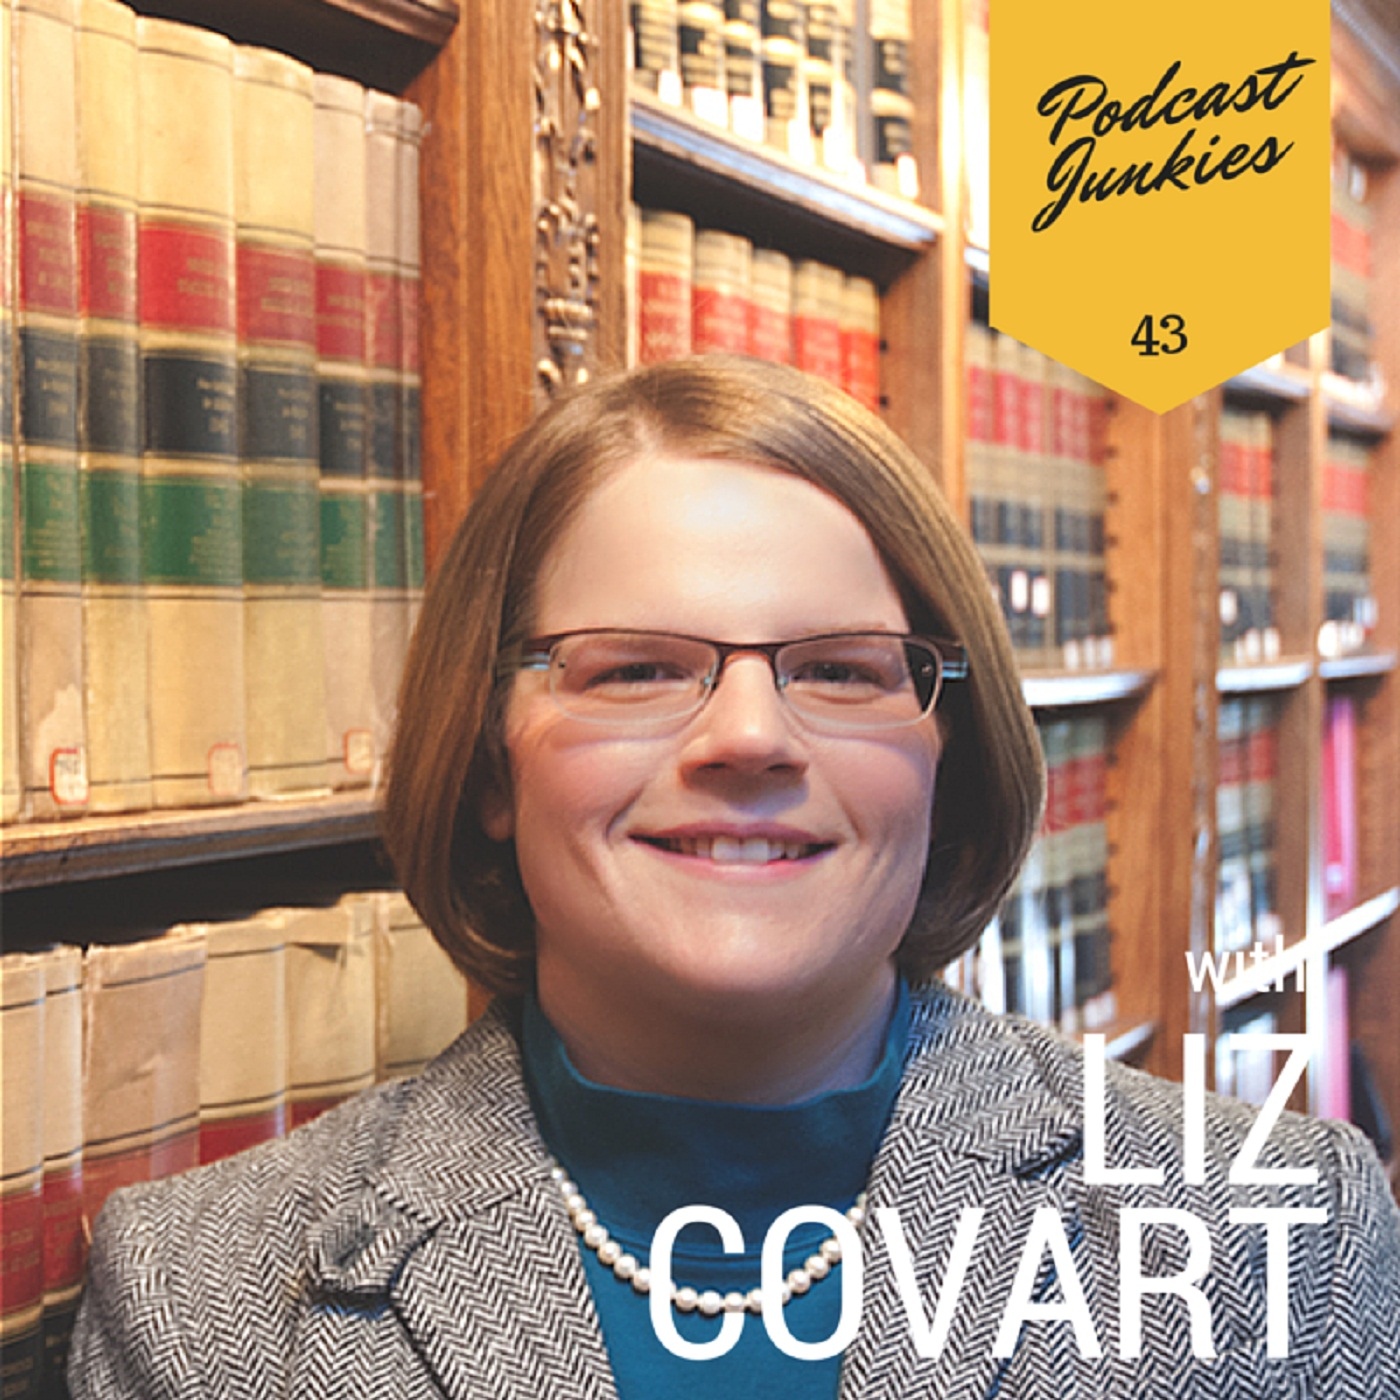 043 Liz Covart | The Present Always Colors How We View The Past